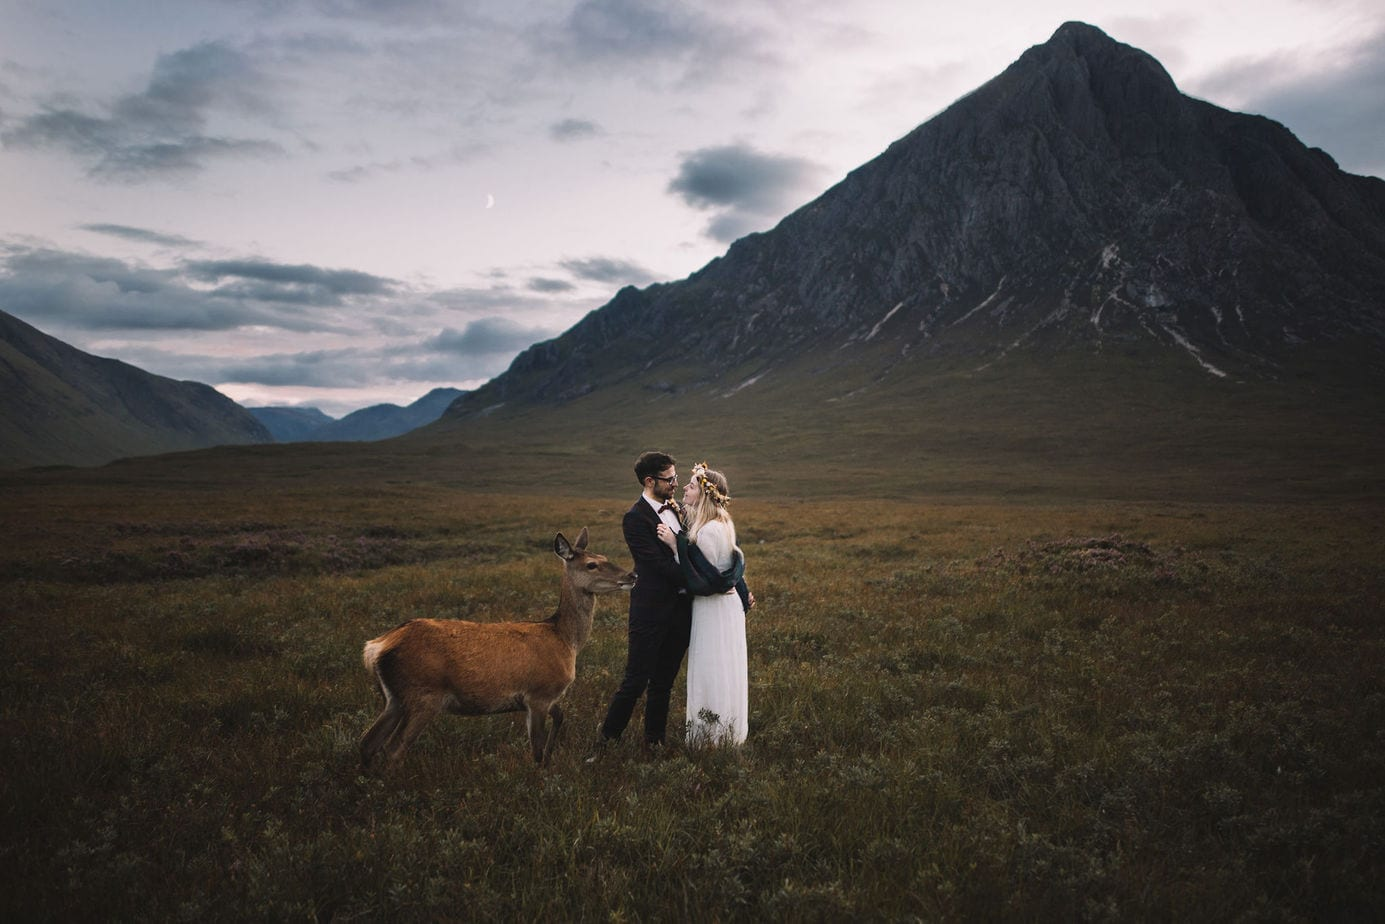 Bride and groom cuddling in Glencoe mountains next to deer. During a Scottish highland elopement.